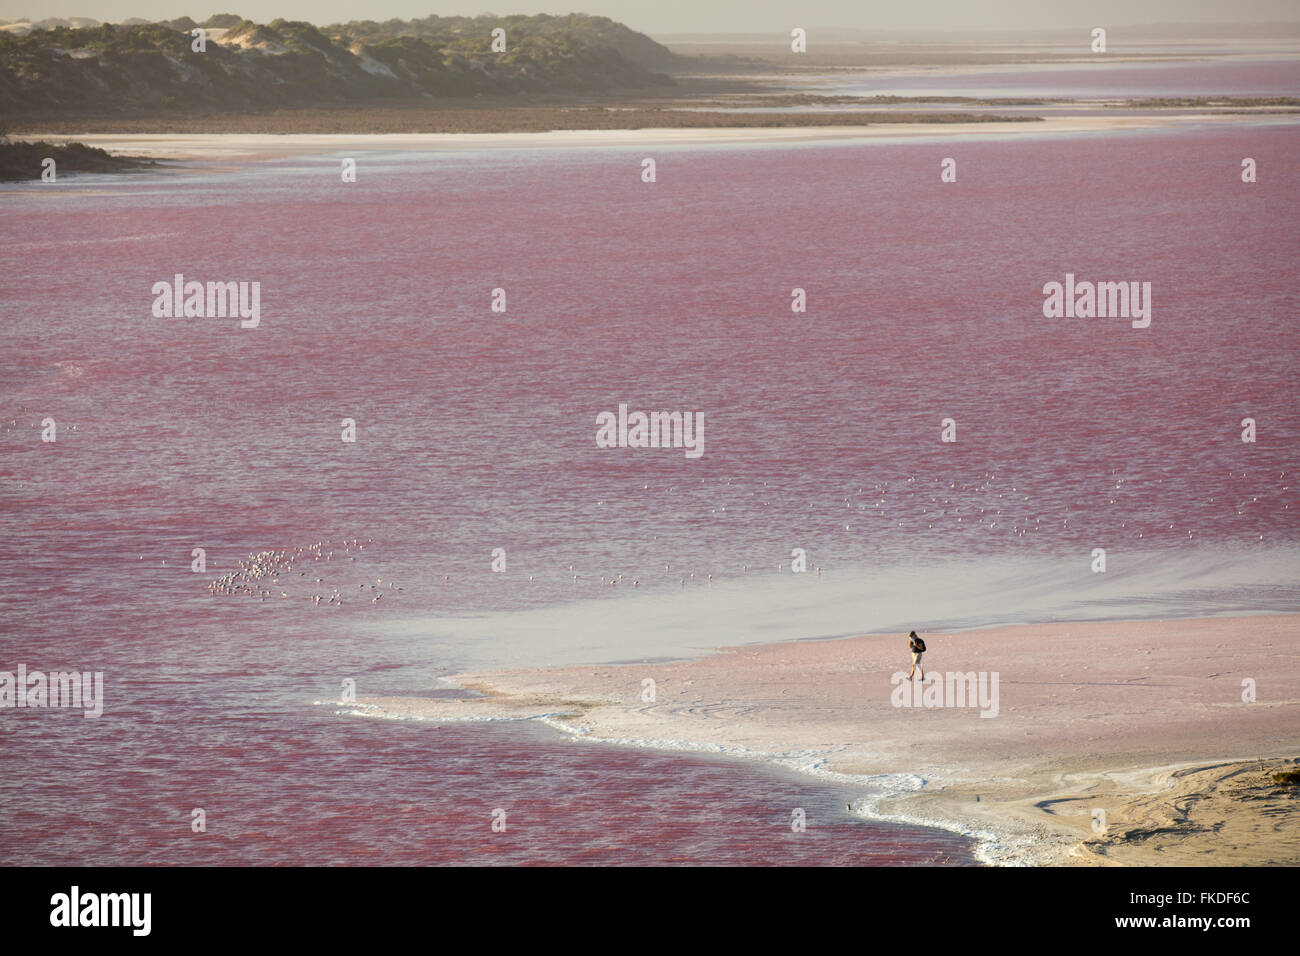 Wendy treading boldly on the shores of the pink Hutt Lagoon at Port Gregory, West Australia - Stock Image